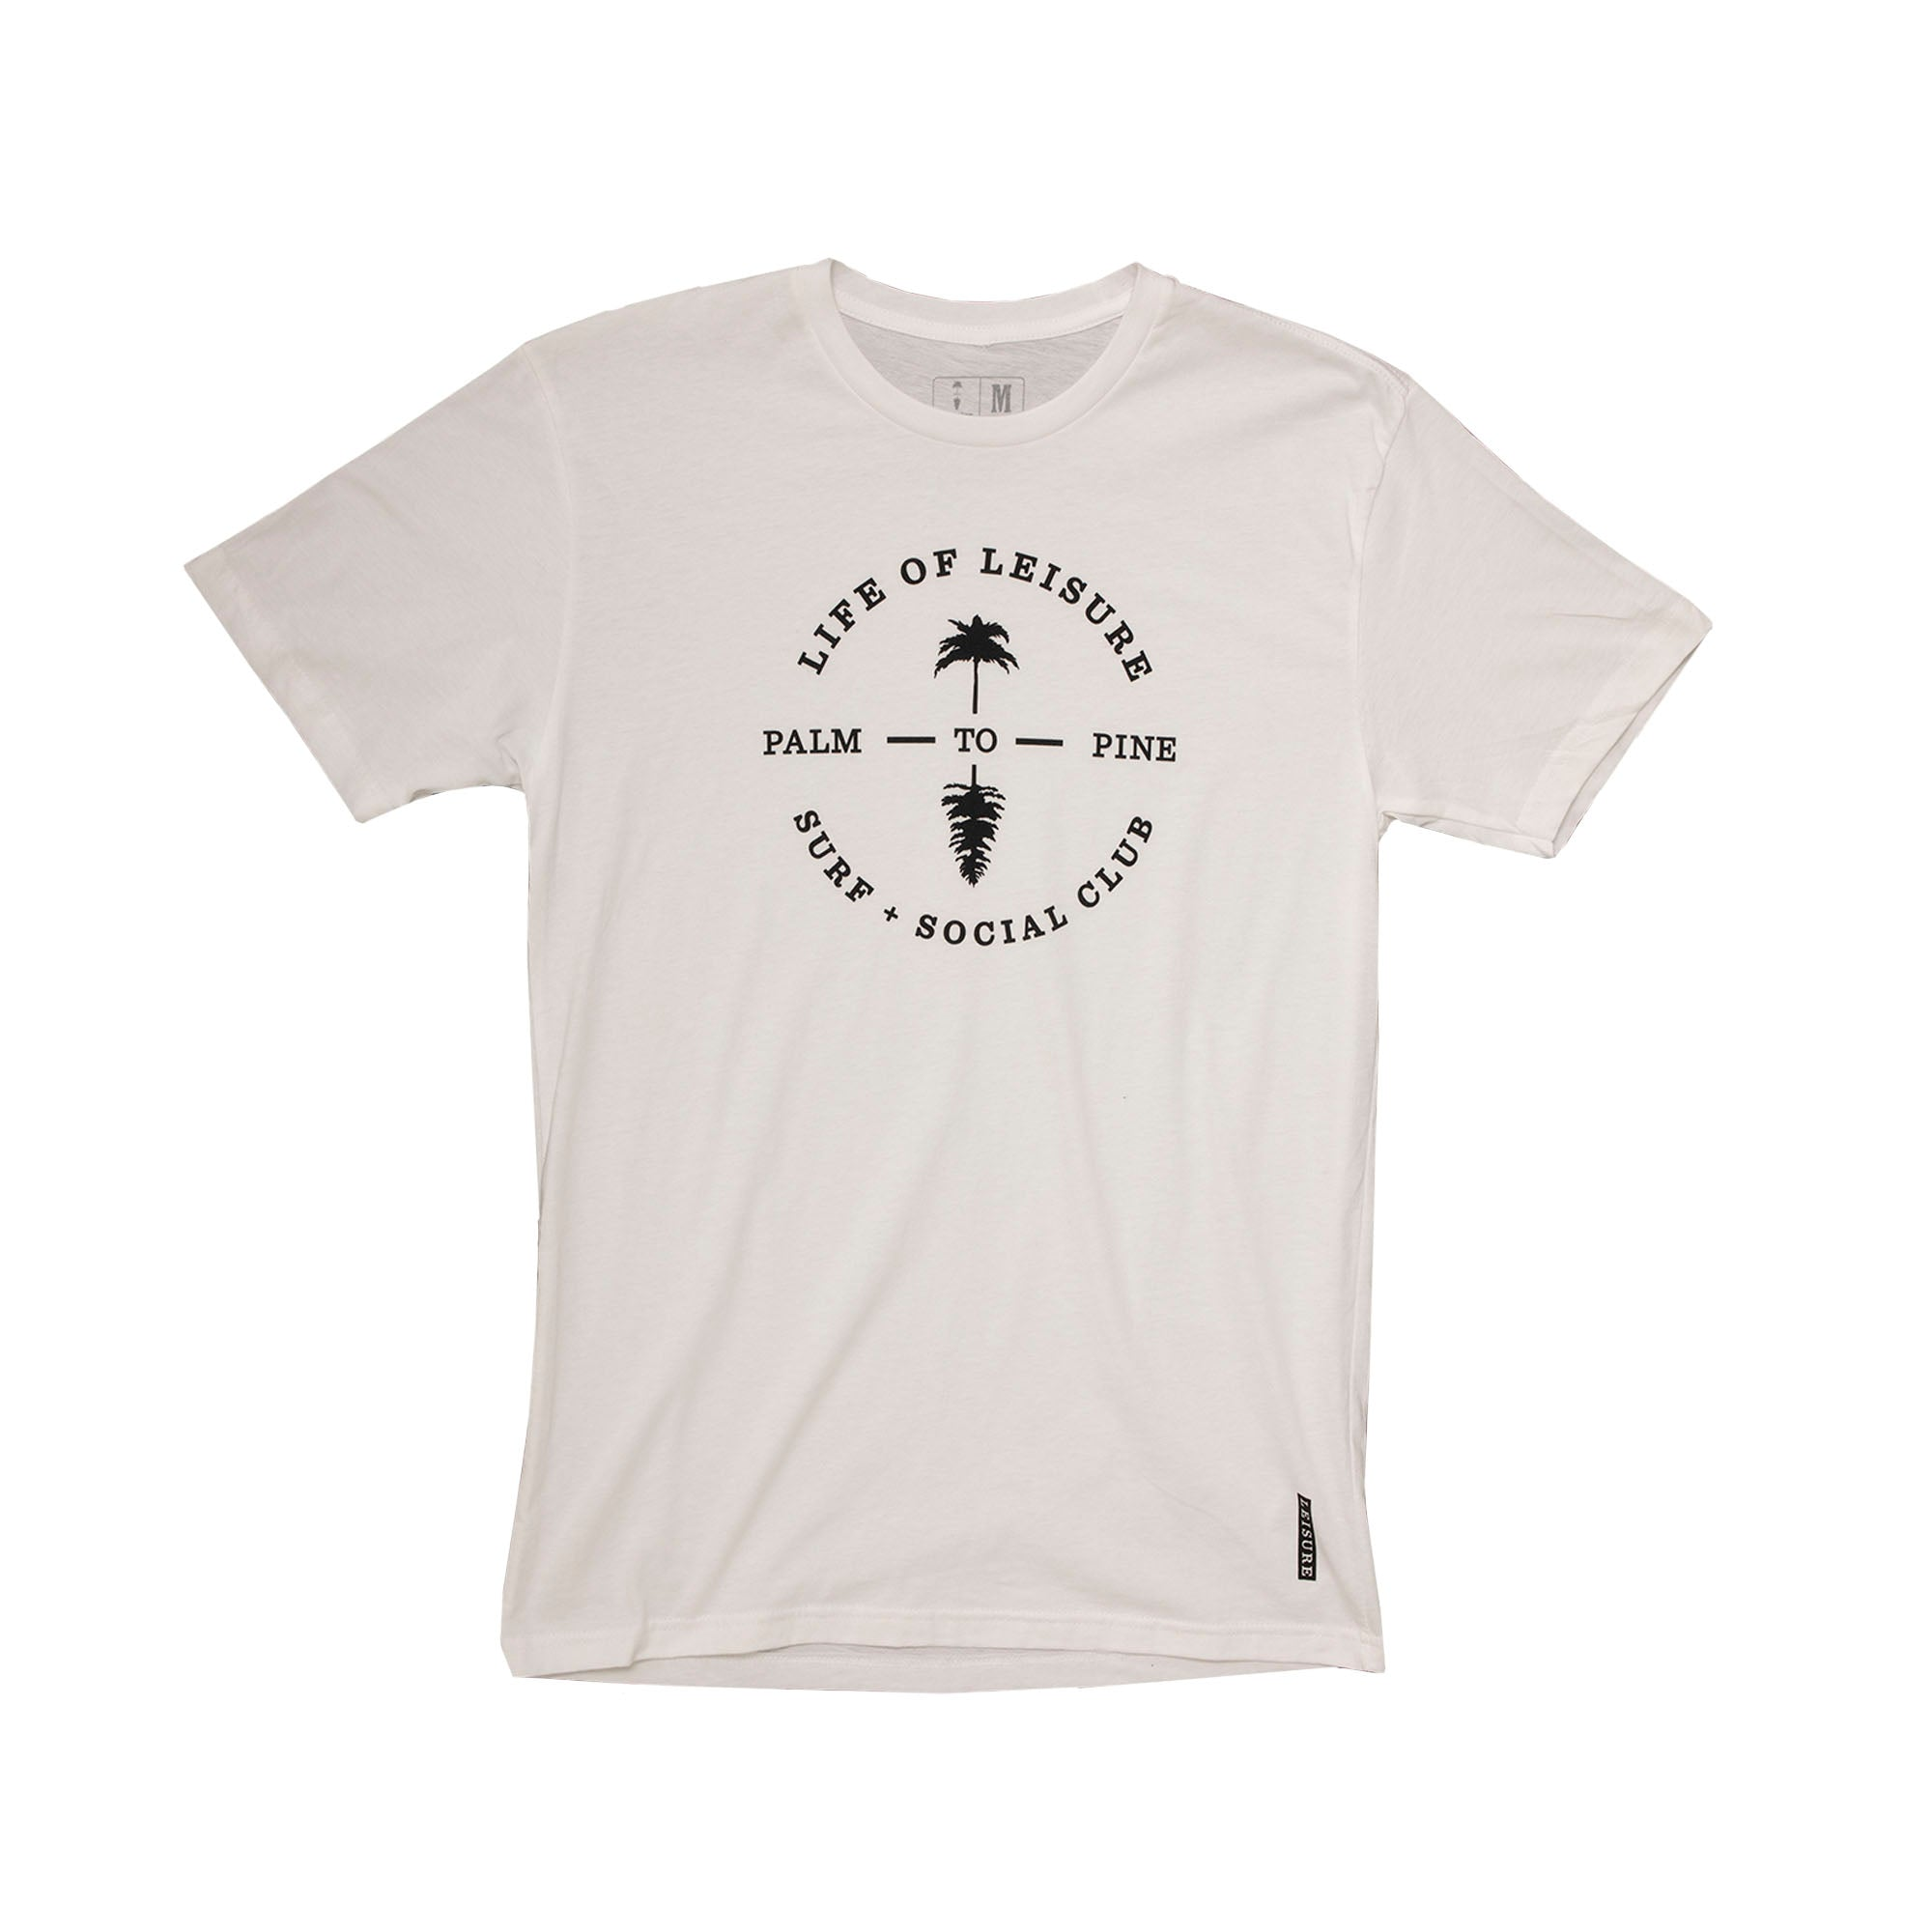 Classic Life Of Leisure Surf & Social Club Circle T-Shirt